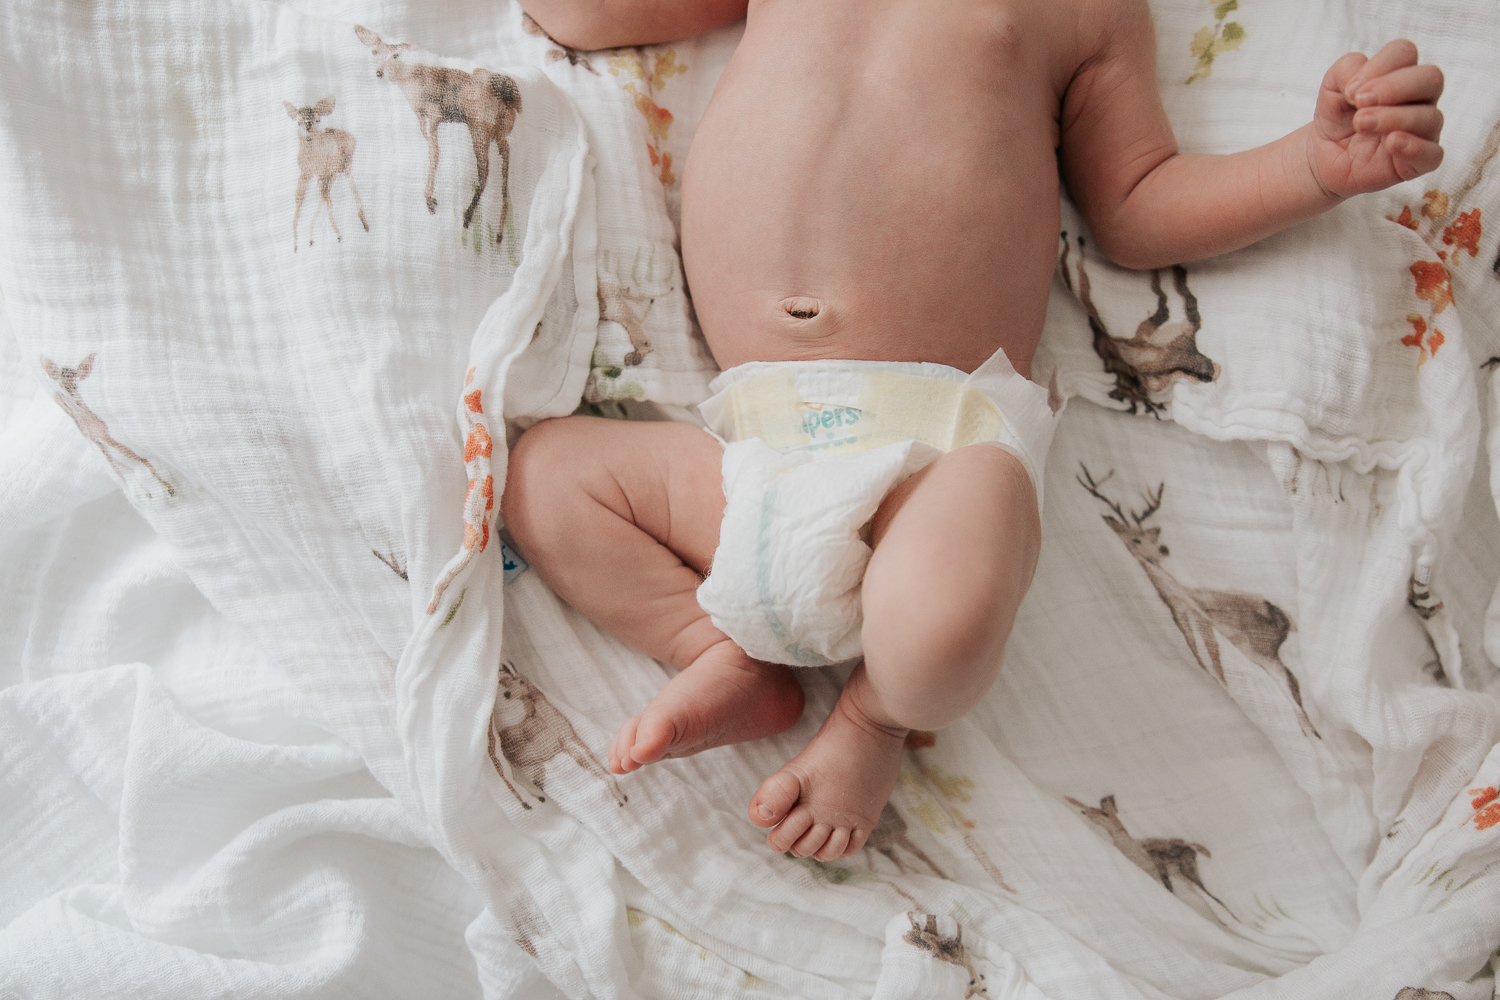 3 week old baby boy in diaper lying on bed, shot of bare bellybutton and feet - Stouffville In-Home Photos